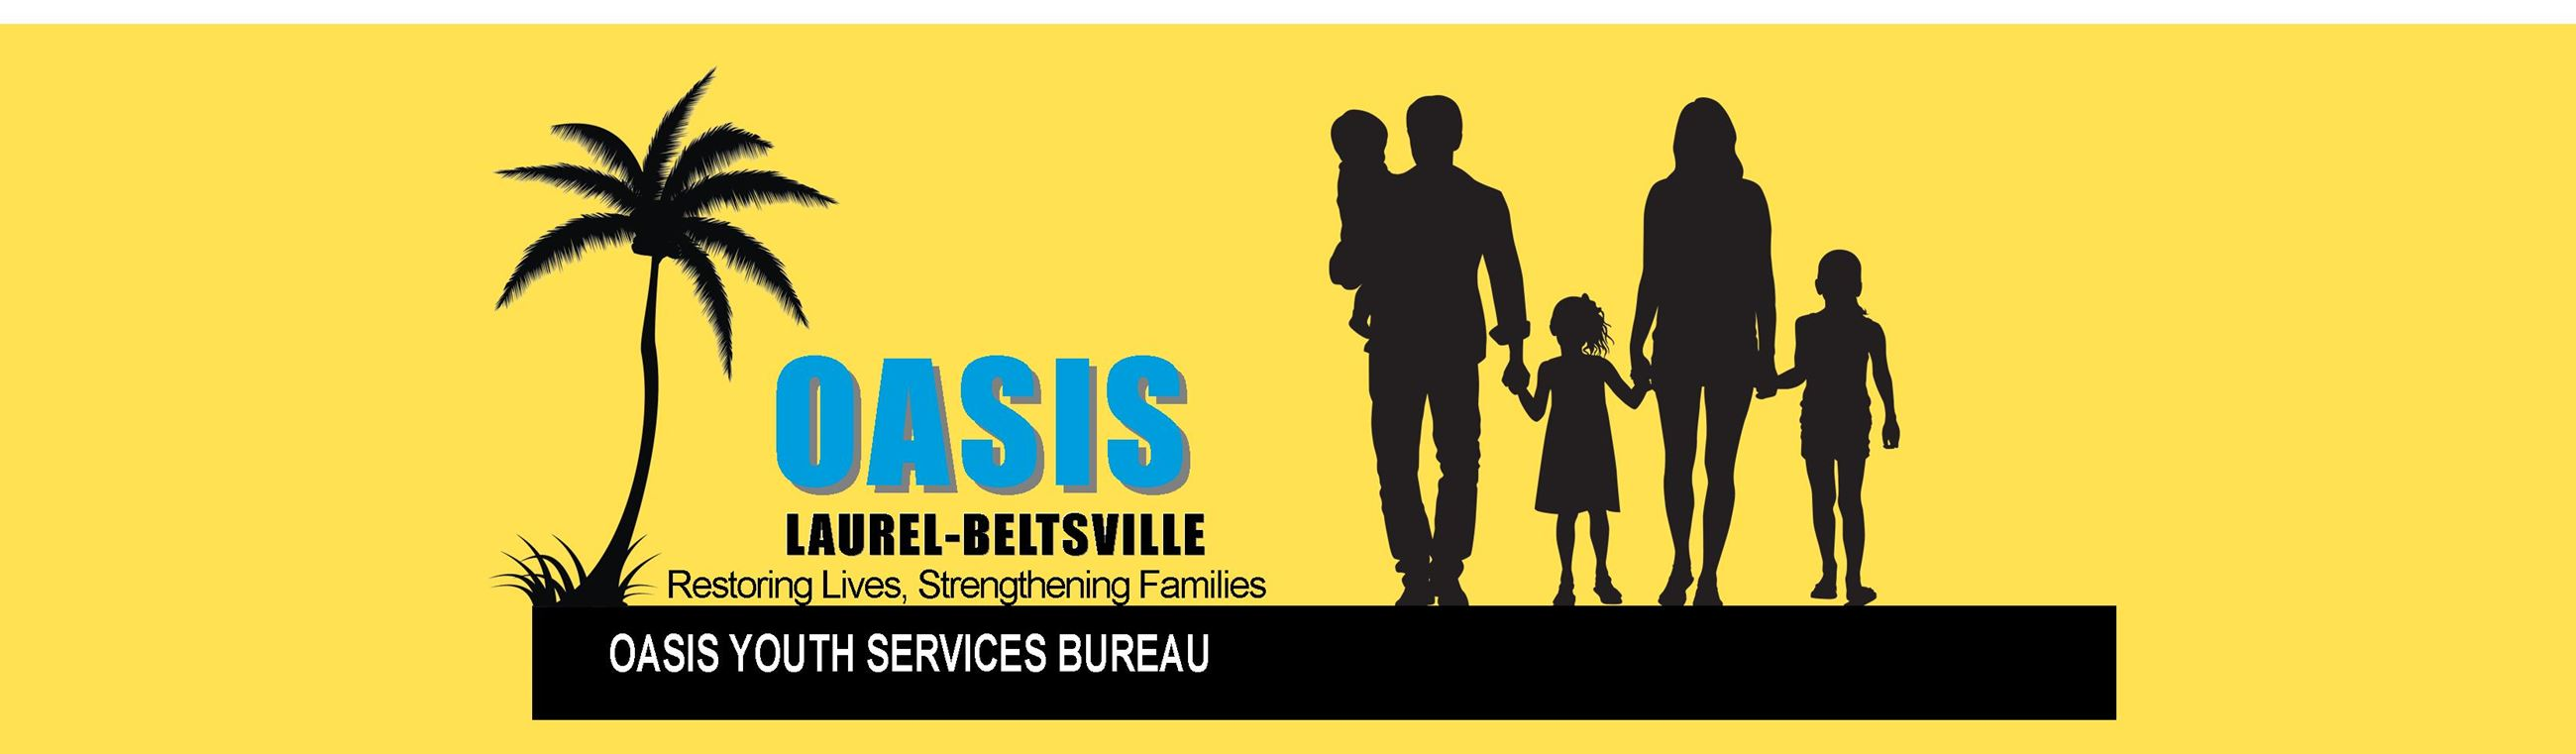 Oasis Youth Service Bureau Banner